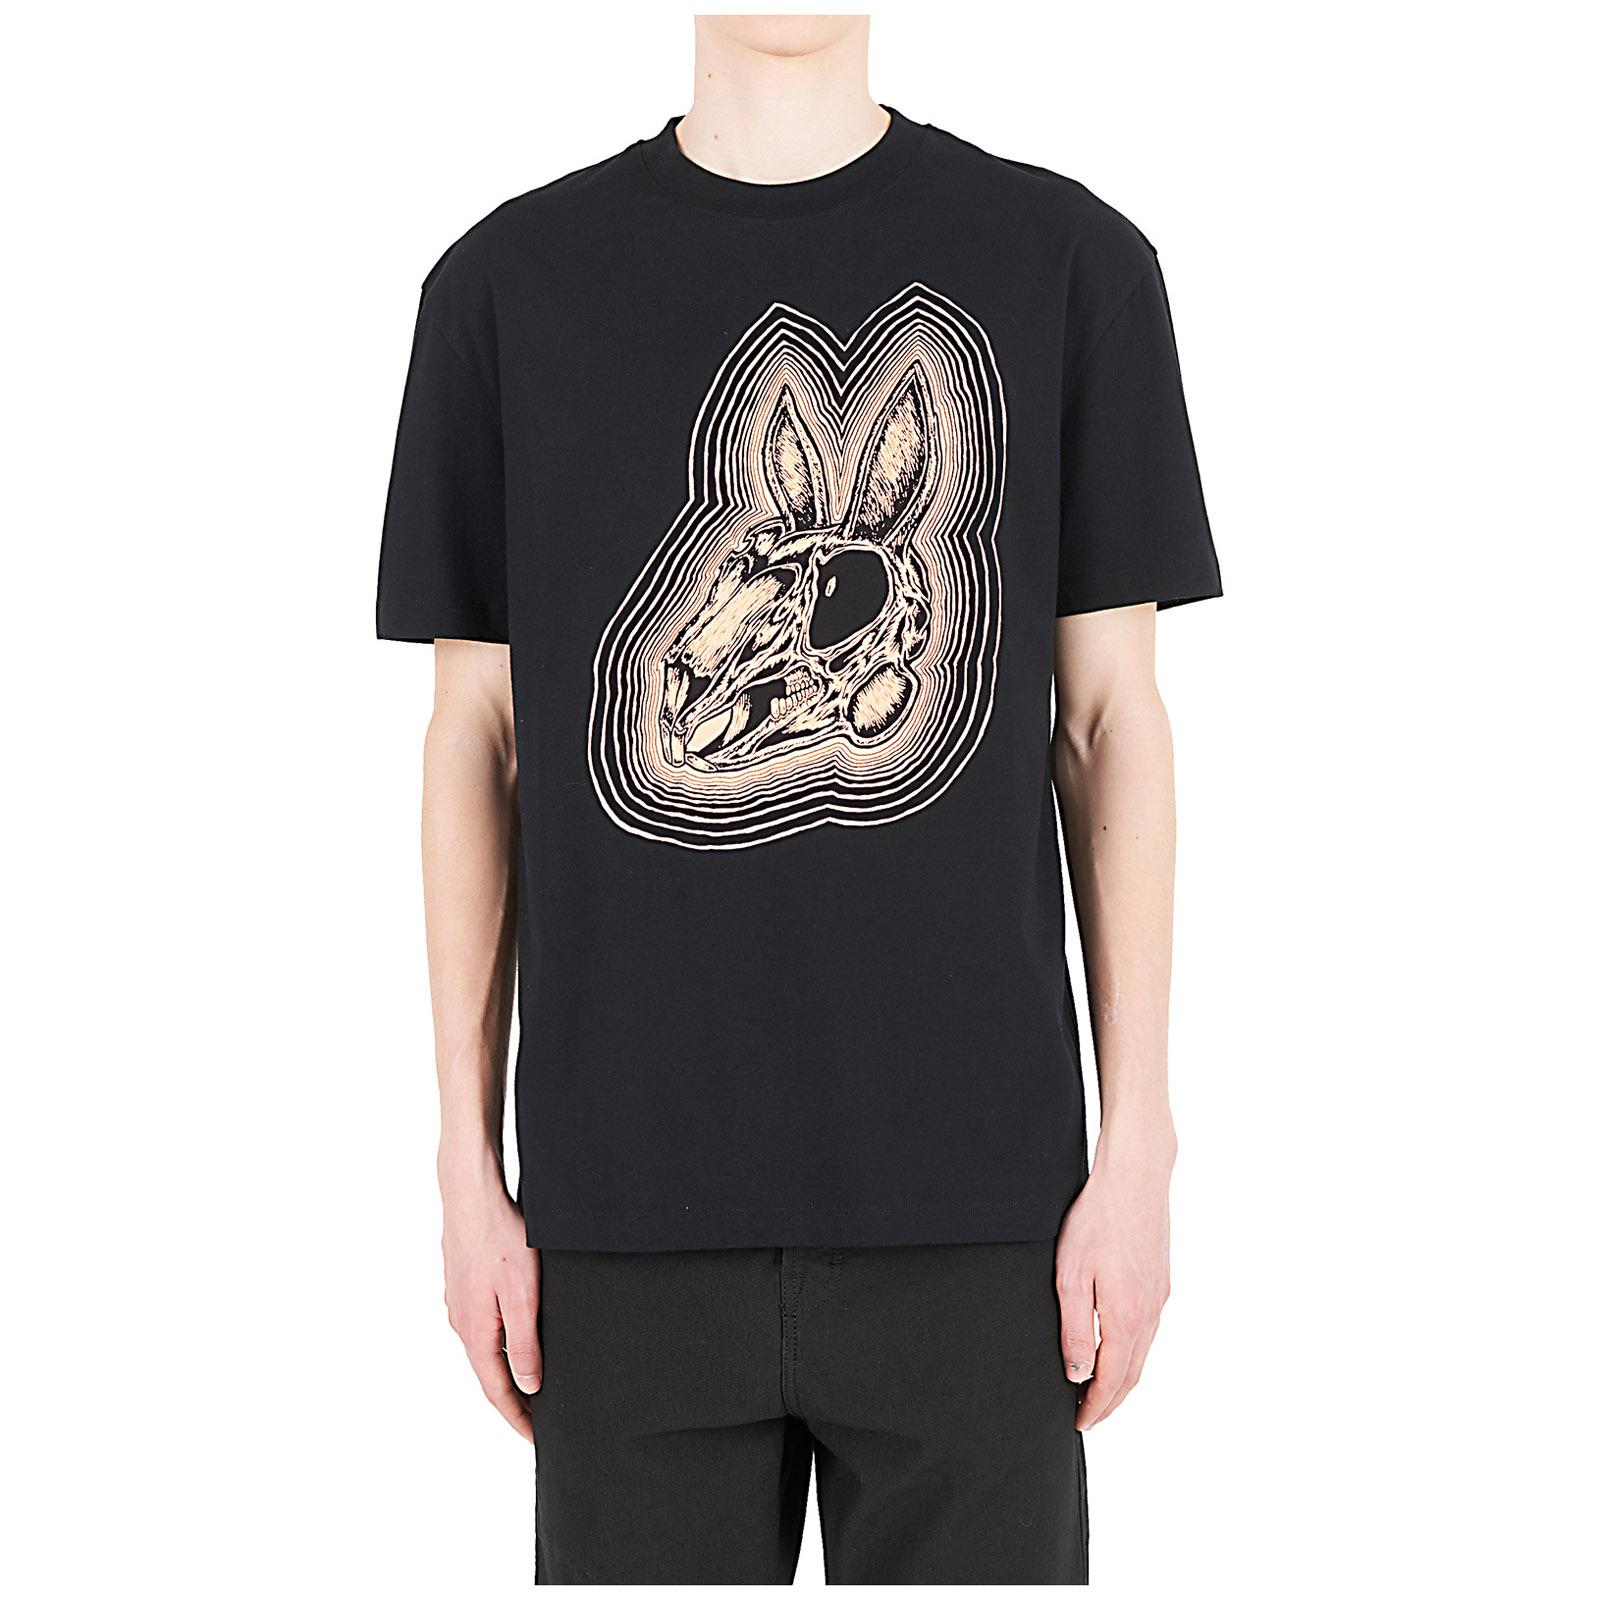 ae144e4a1 McQ Short Sleeve T-shirt Crew Neckline Jumper Rabbit in Black for ...